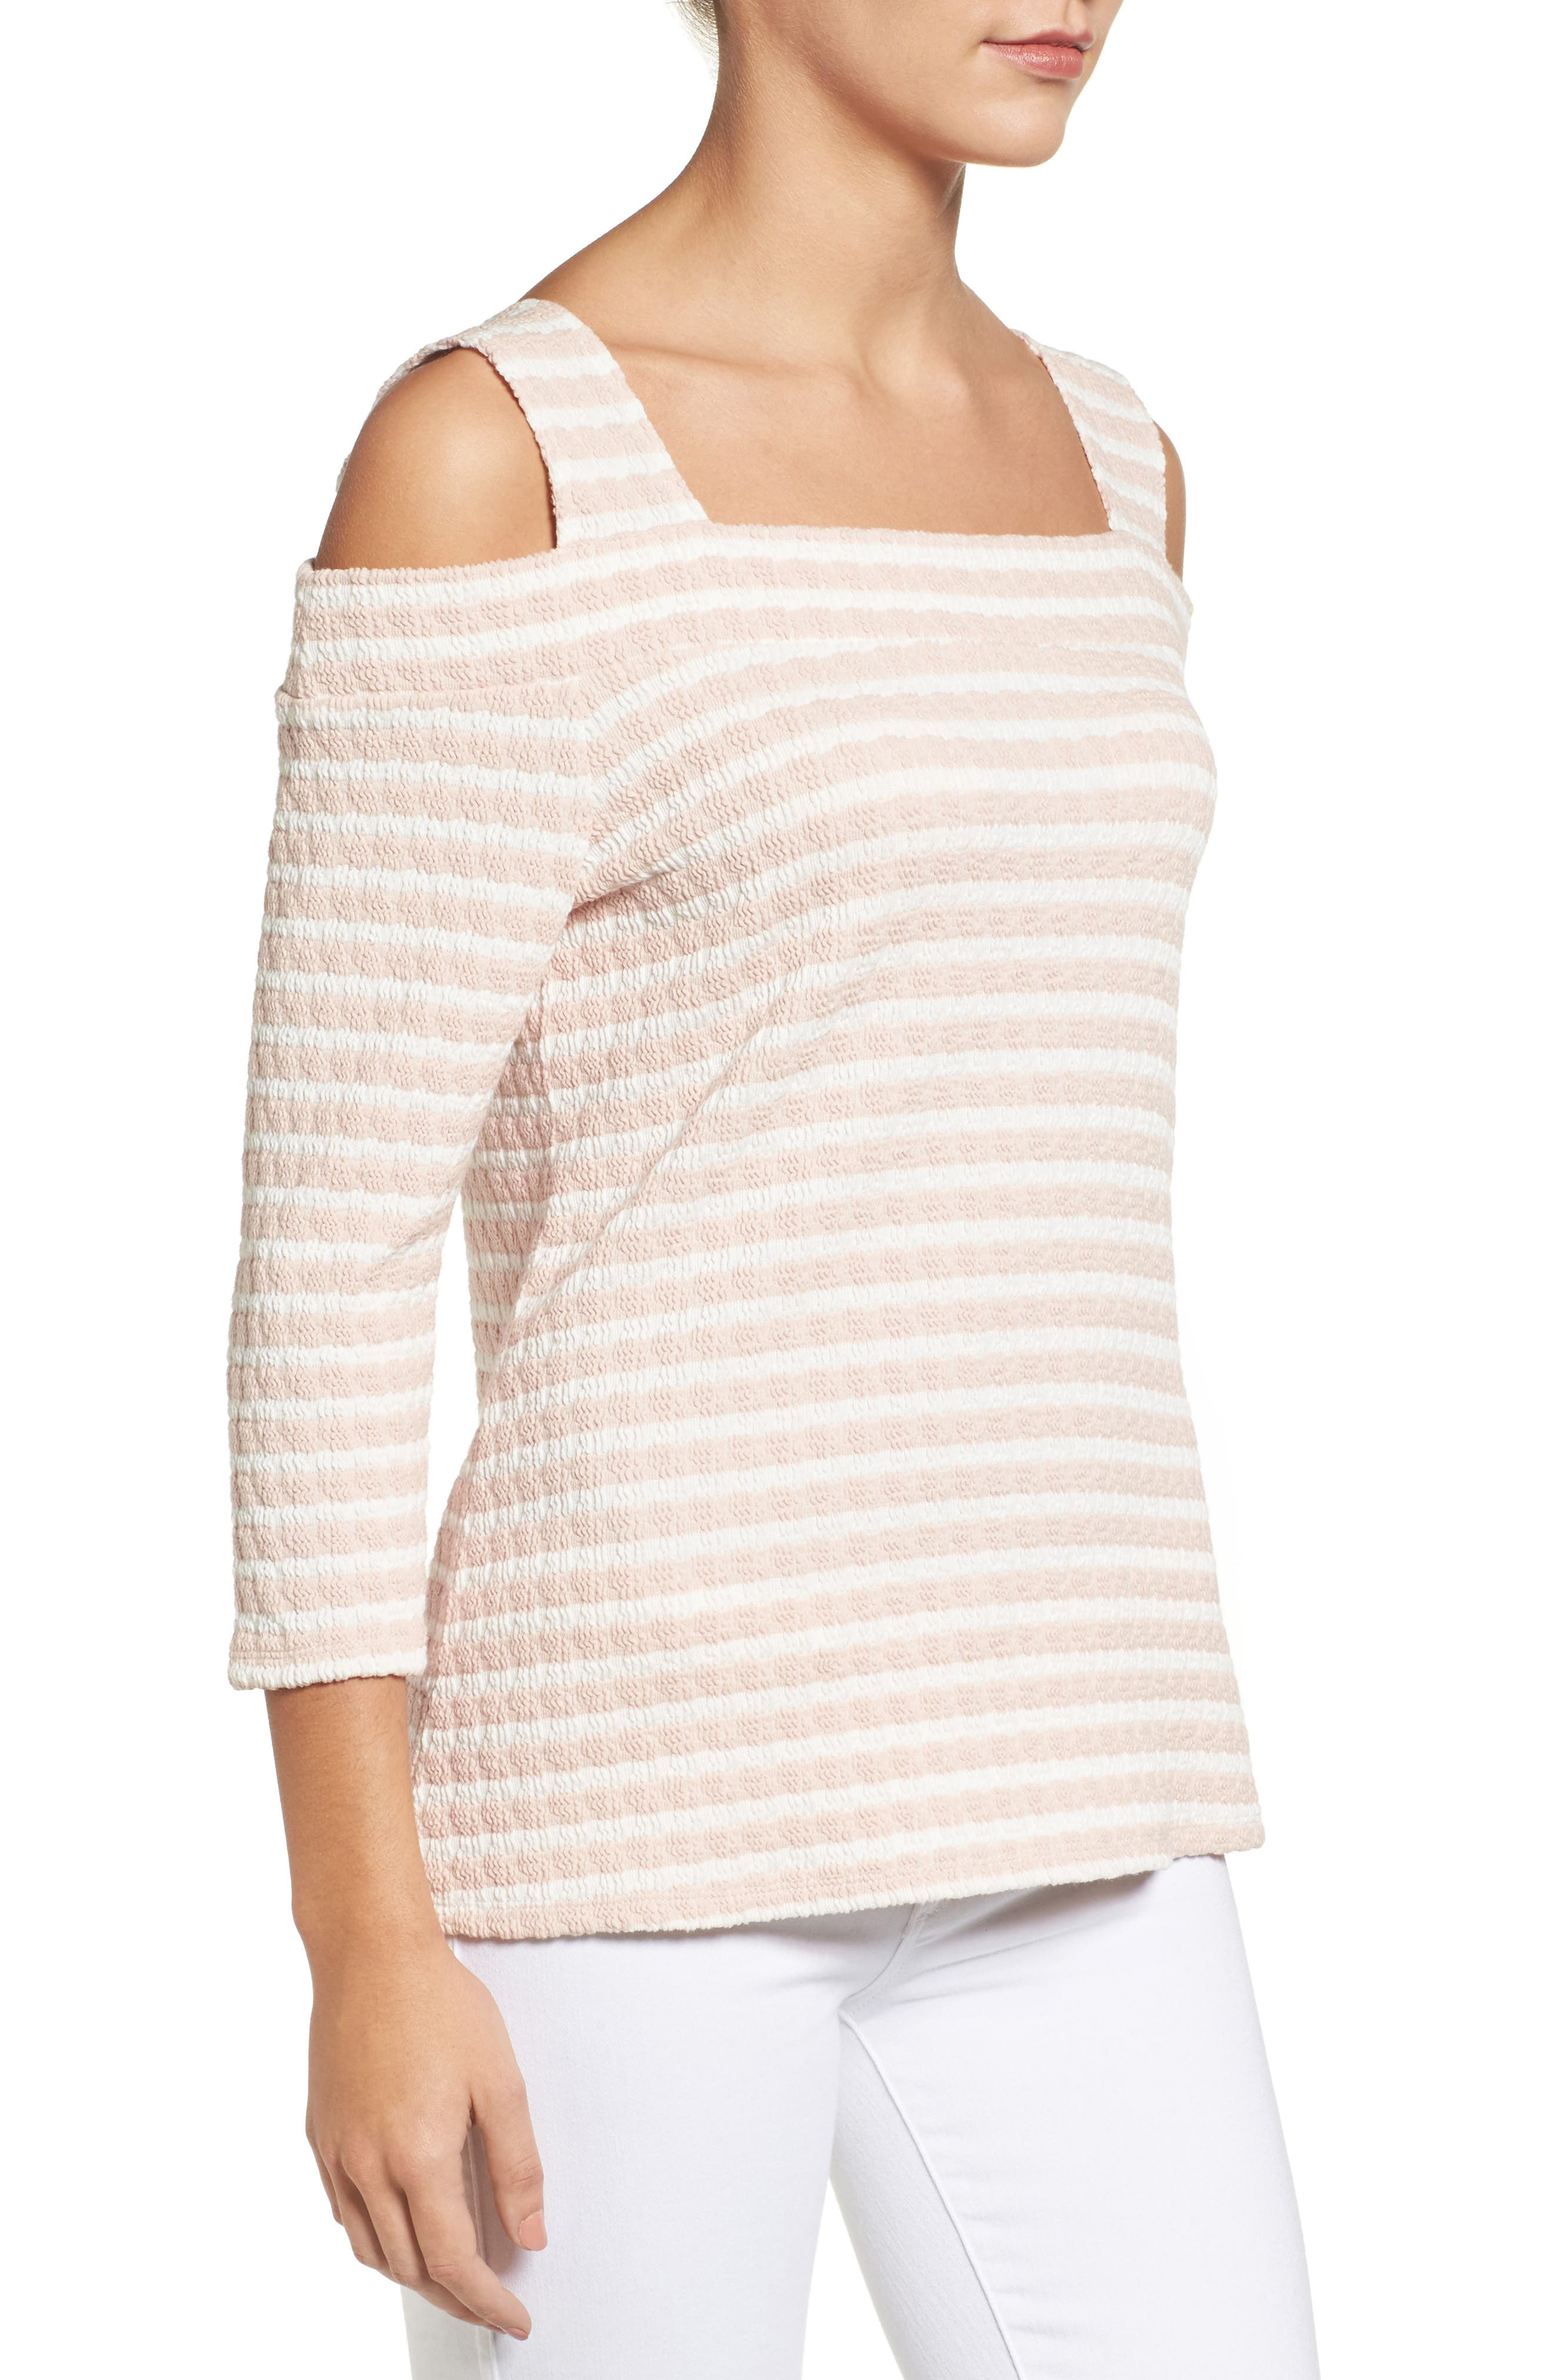 KUT FROM THE KLOTH, Fridi Texture Stripe Cold Shoulder Top, Alternate thumbnail 3, color, 194